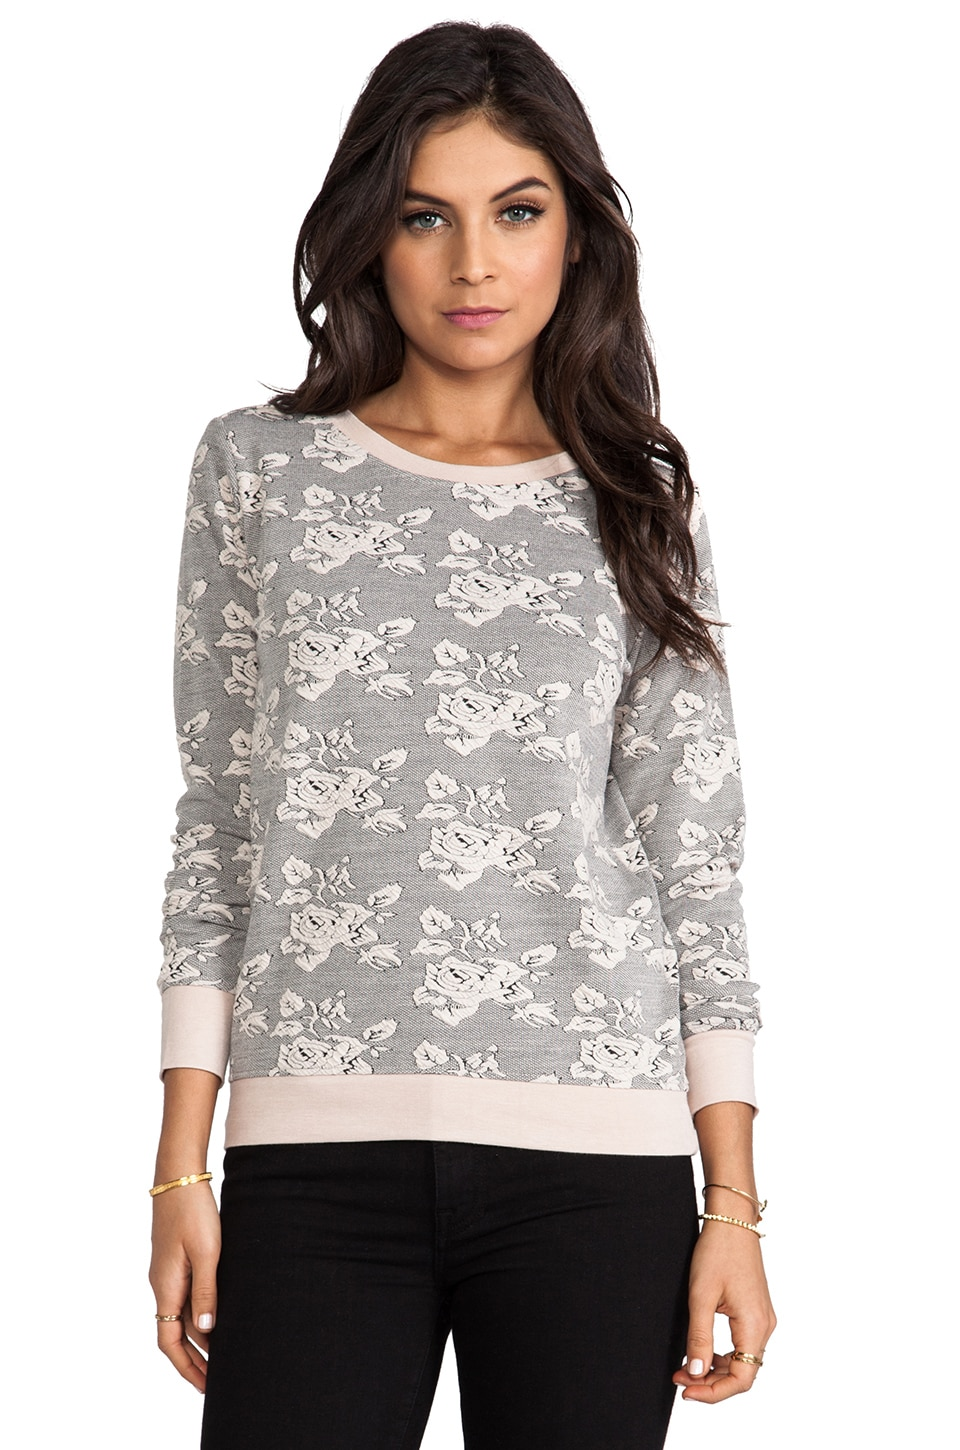 BB Dakota Tierney Rose Pattern Knit Jacquard in Whitecap Beige